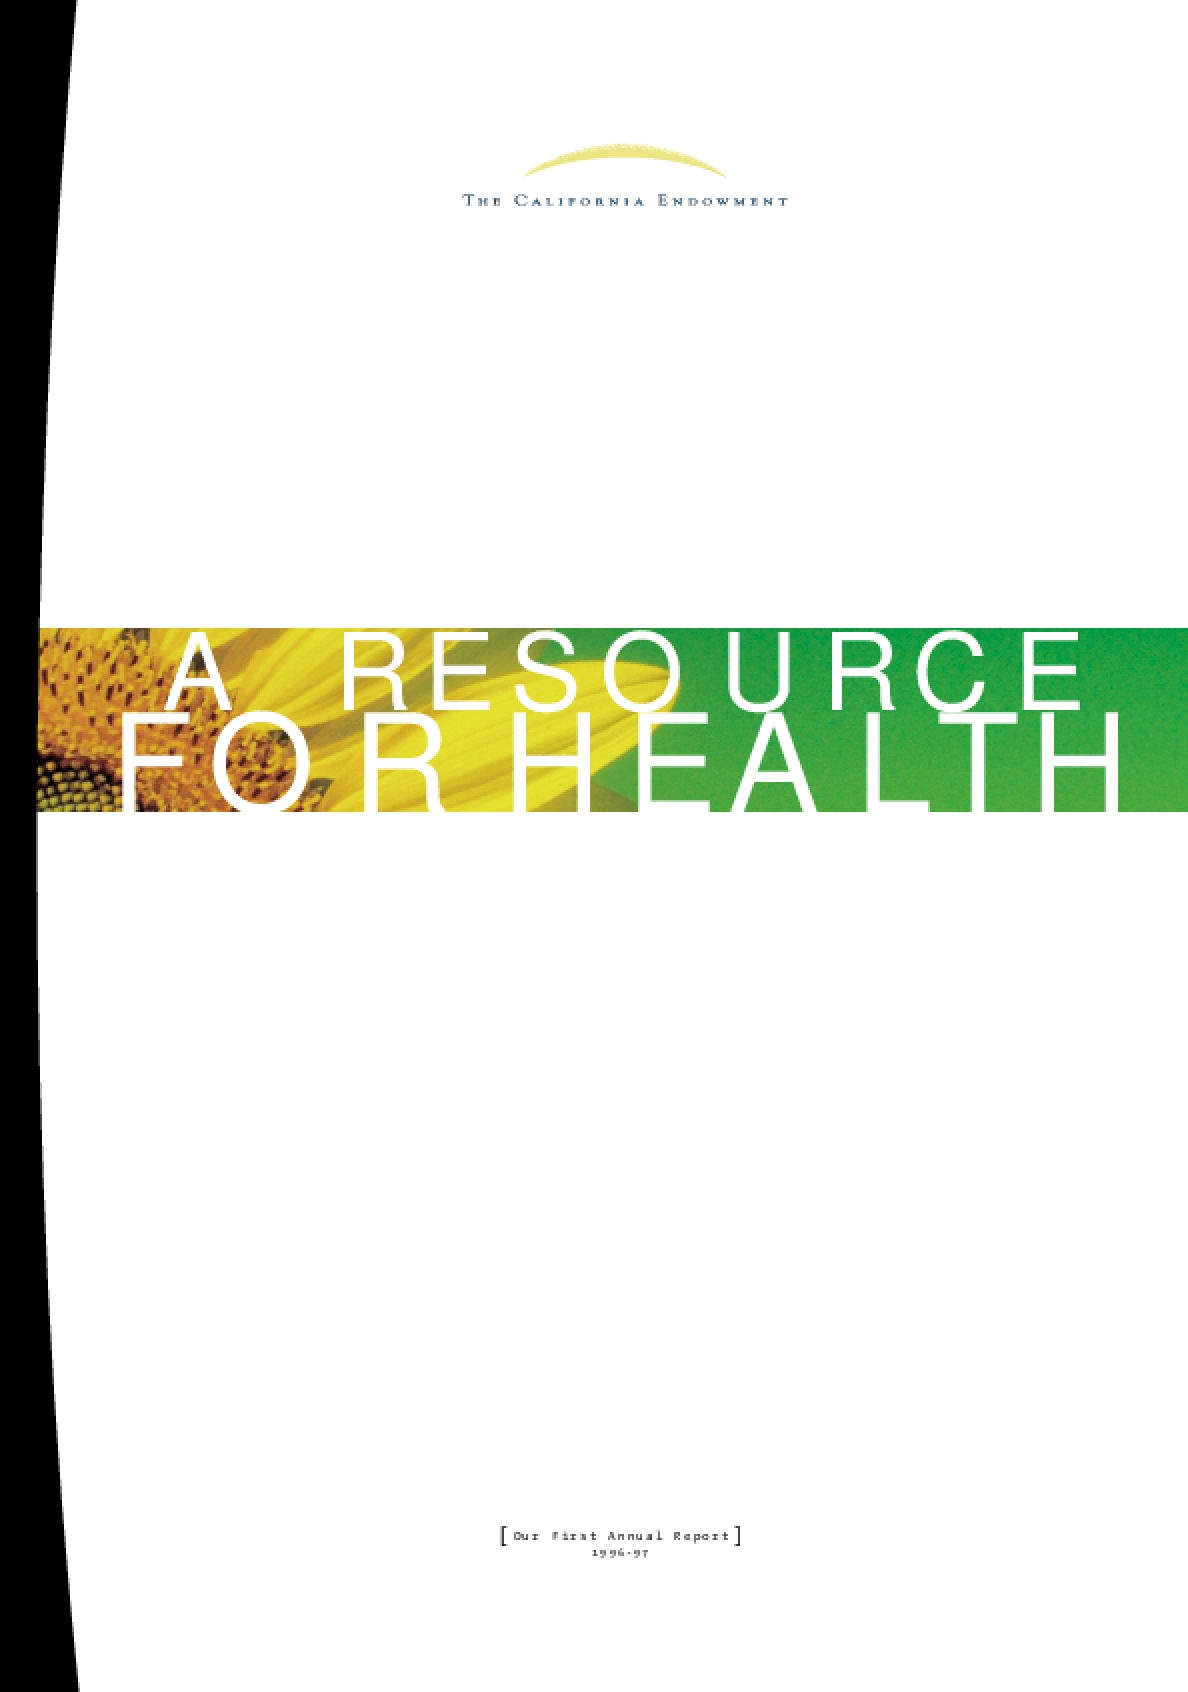 California Endowment - 1996-1997 Annual Report: A Resource for Health